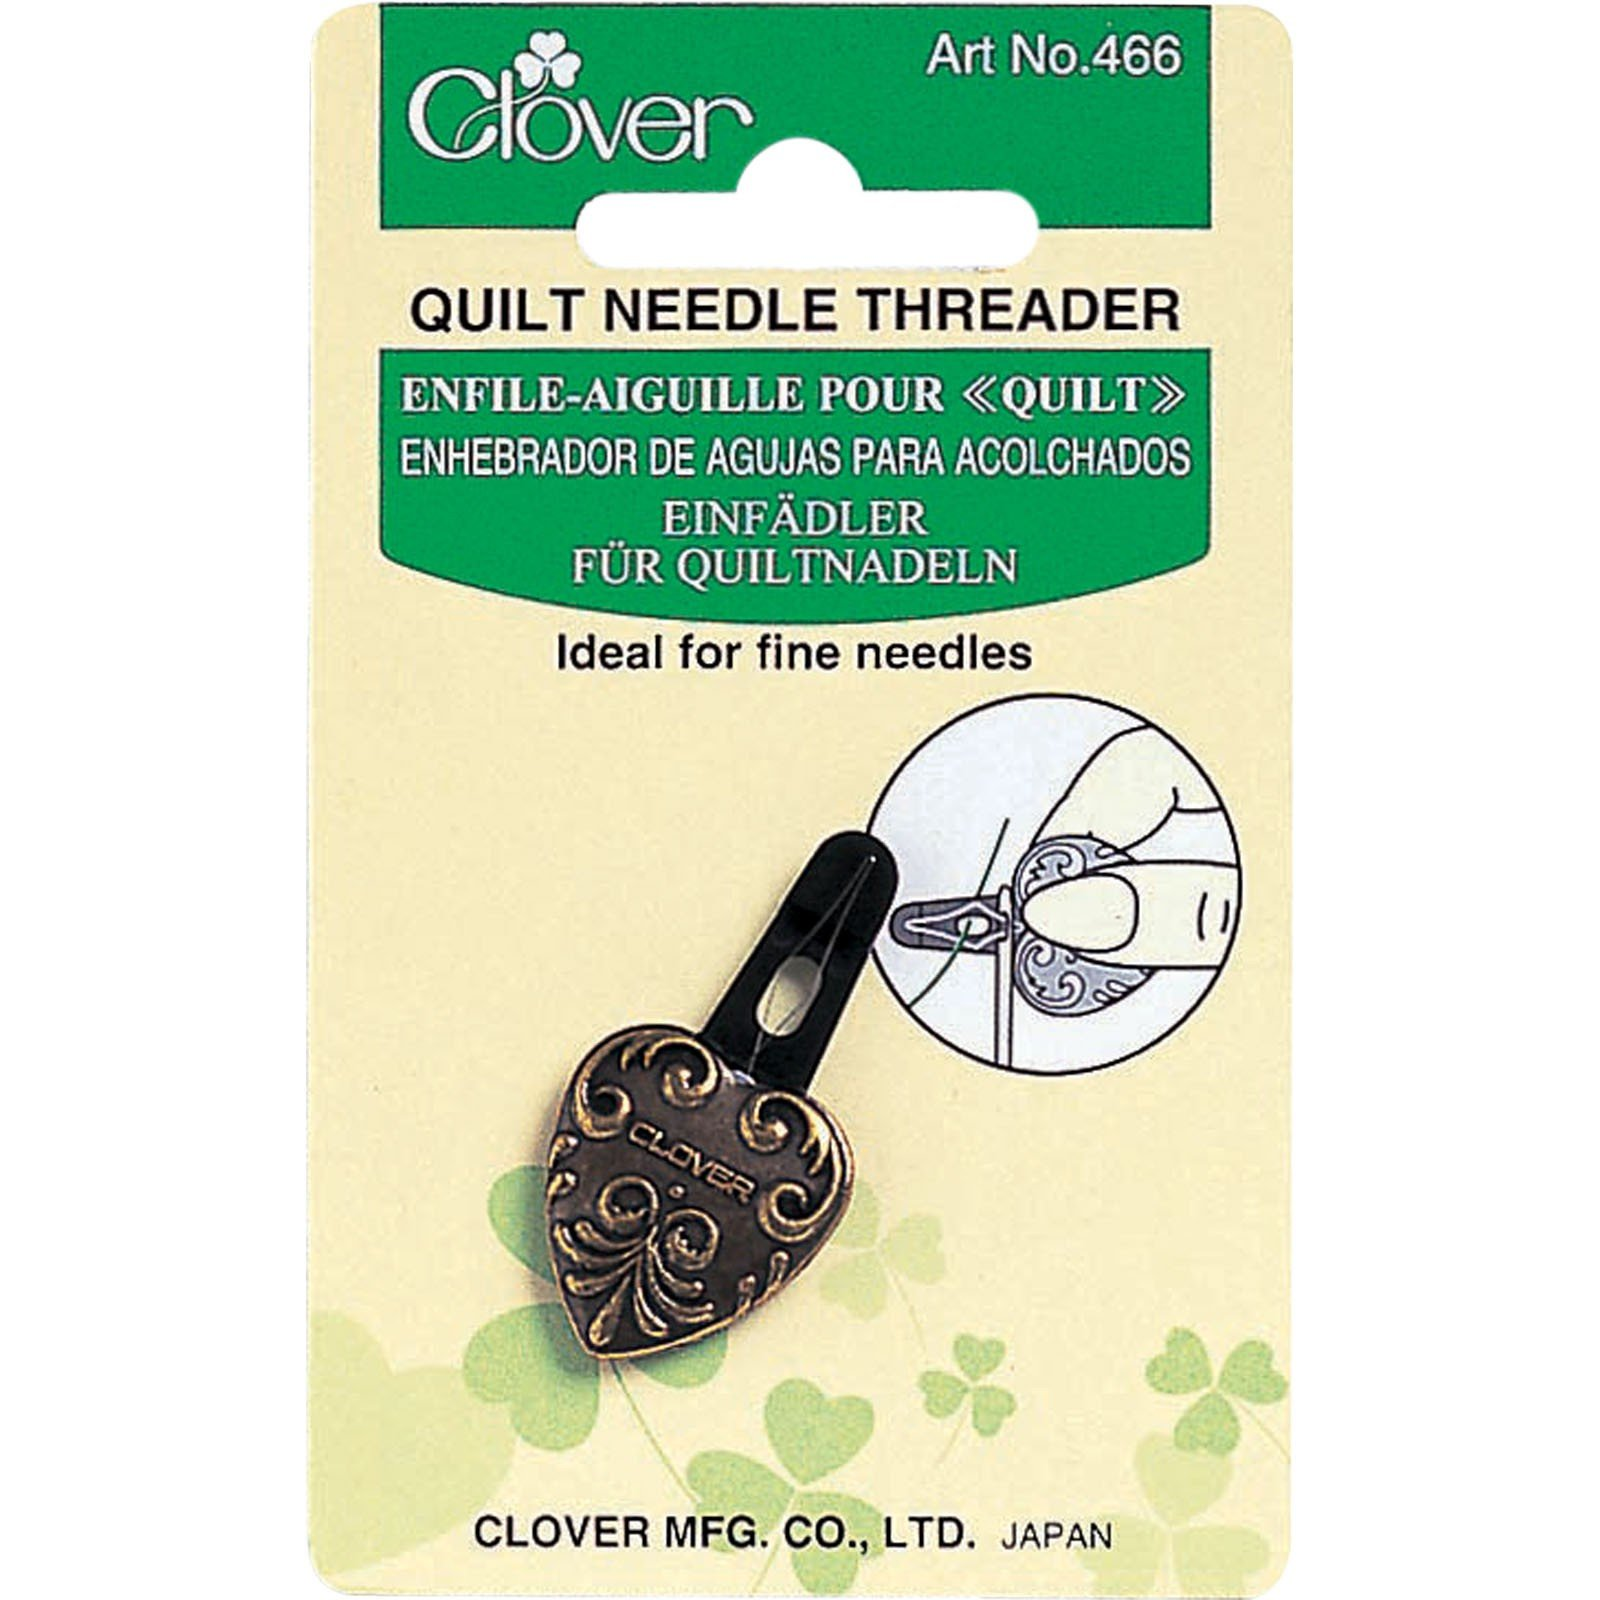 Quilt Needle Threader by Clover